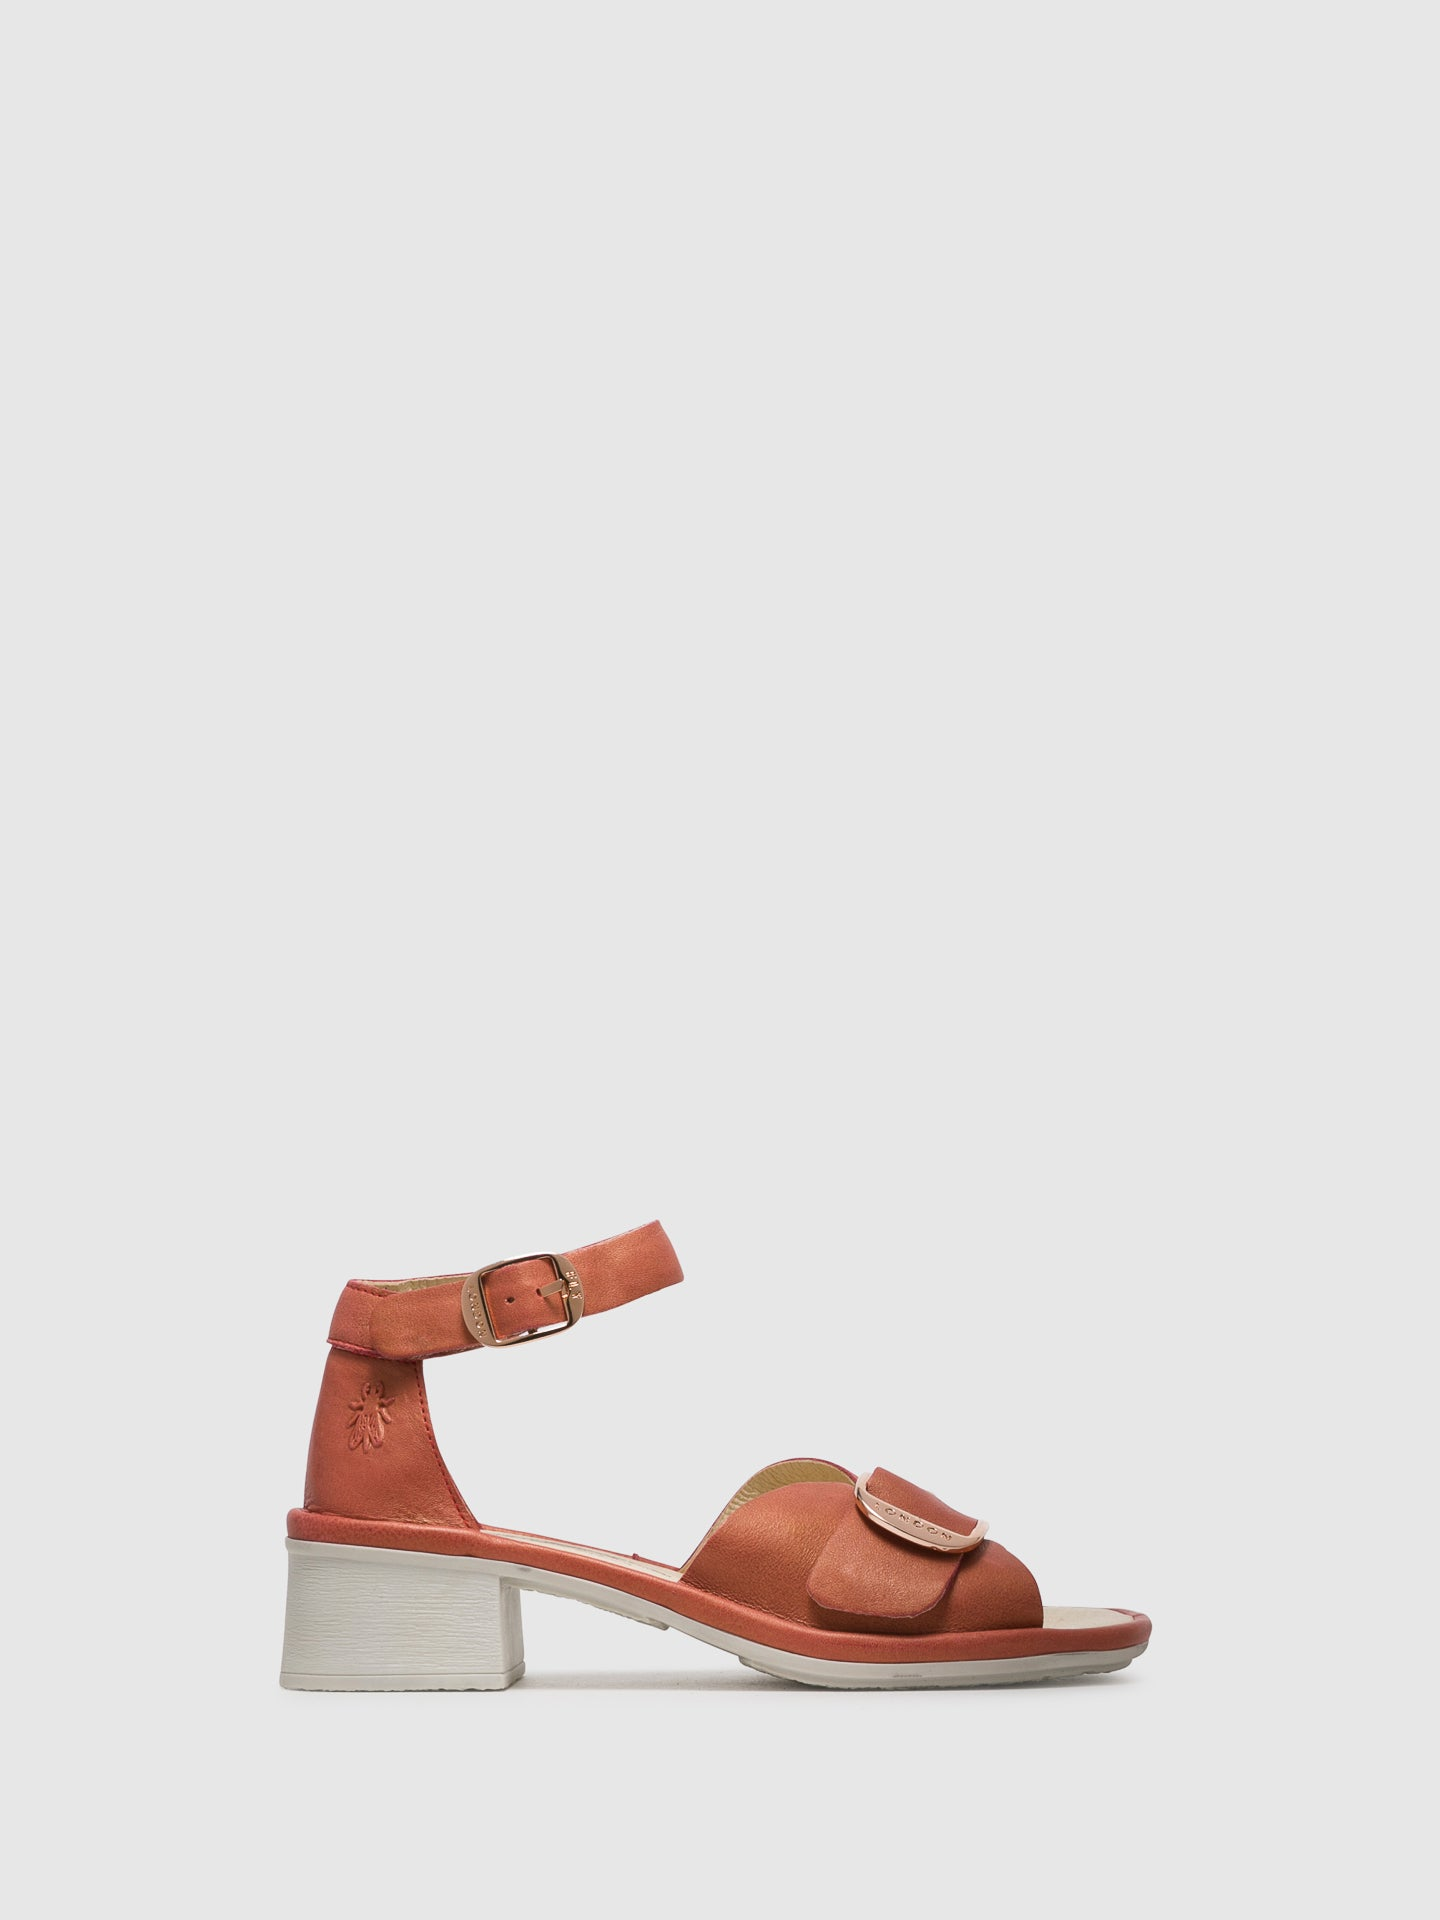 Fly London Pink Buckle Sandals